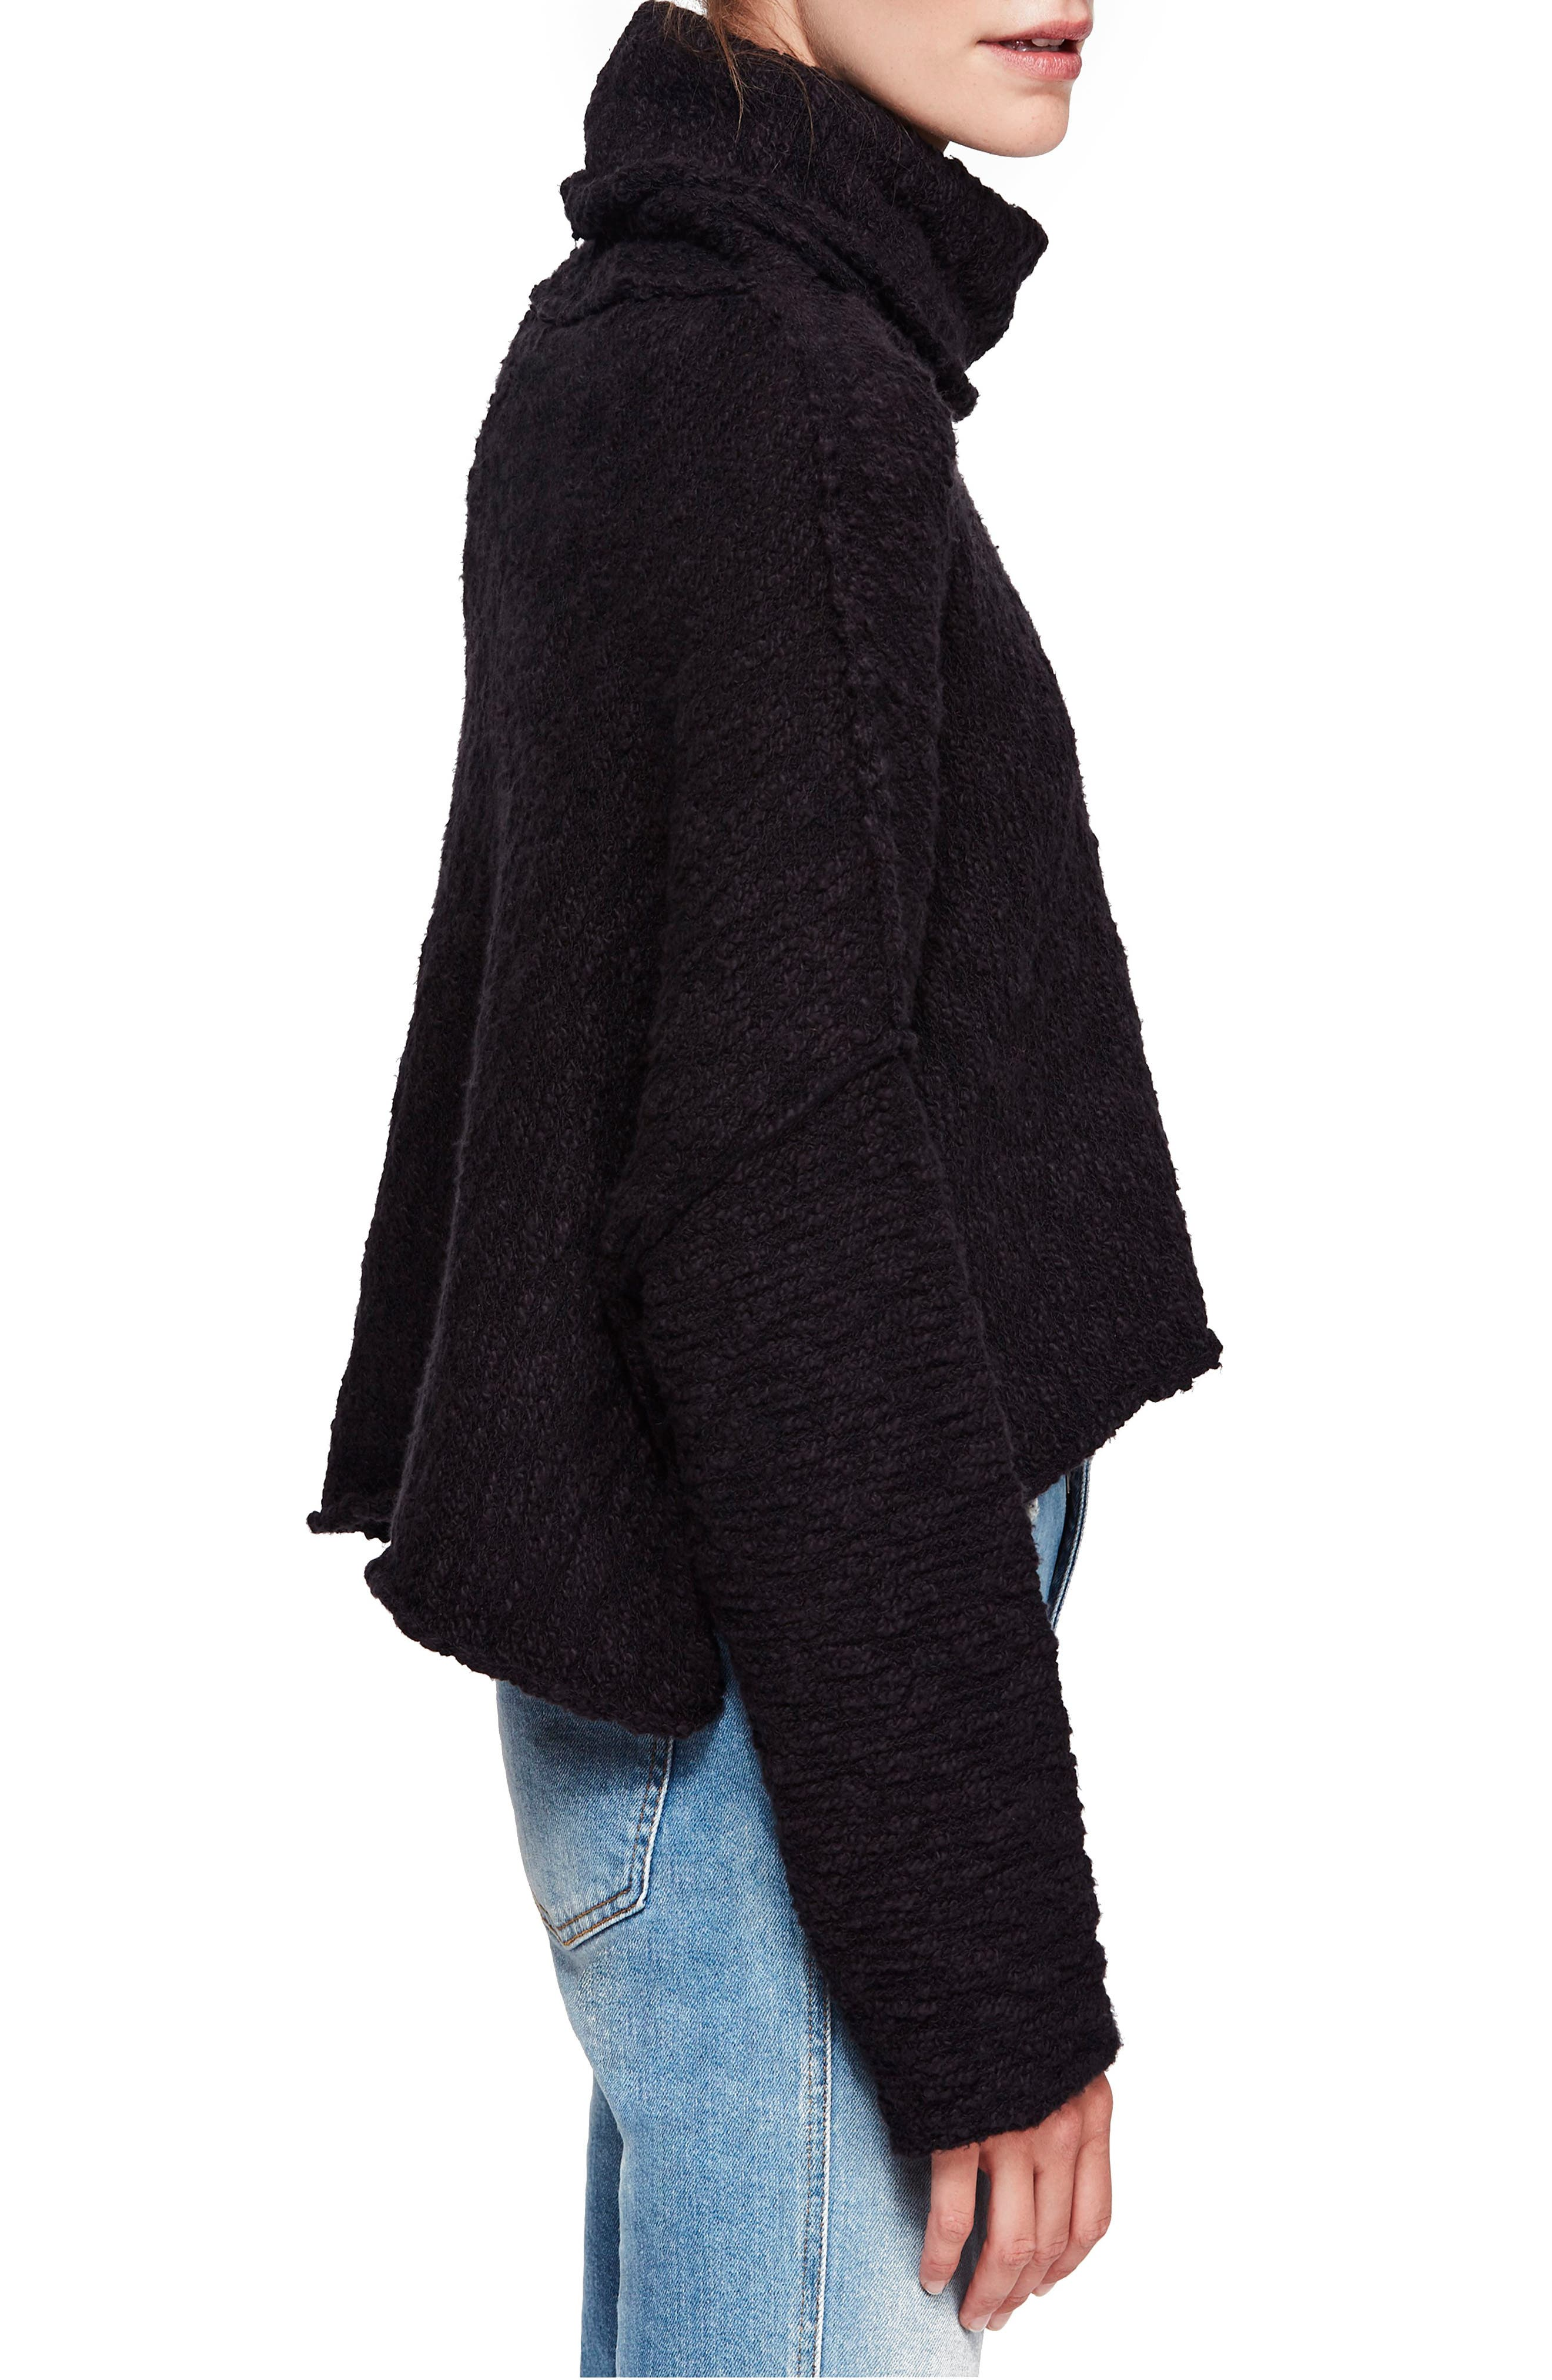 FREE PEOPLE,                             Big Easy Cowl Neck Crop Sweater,                             Alternate thumbnail 3, color,                             001